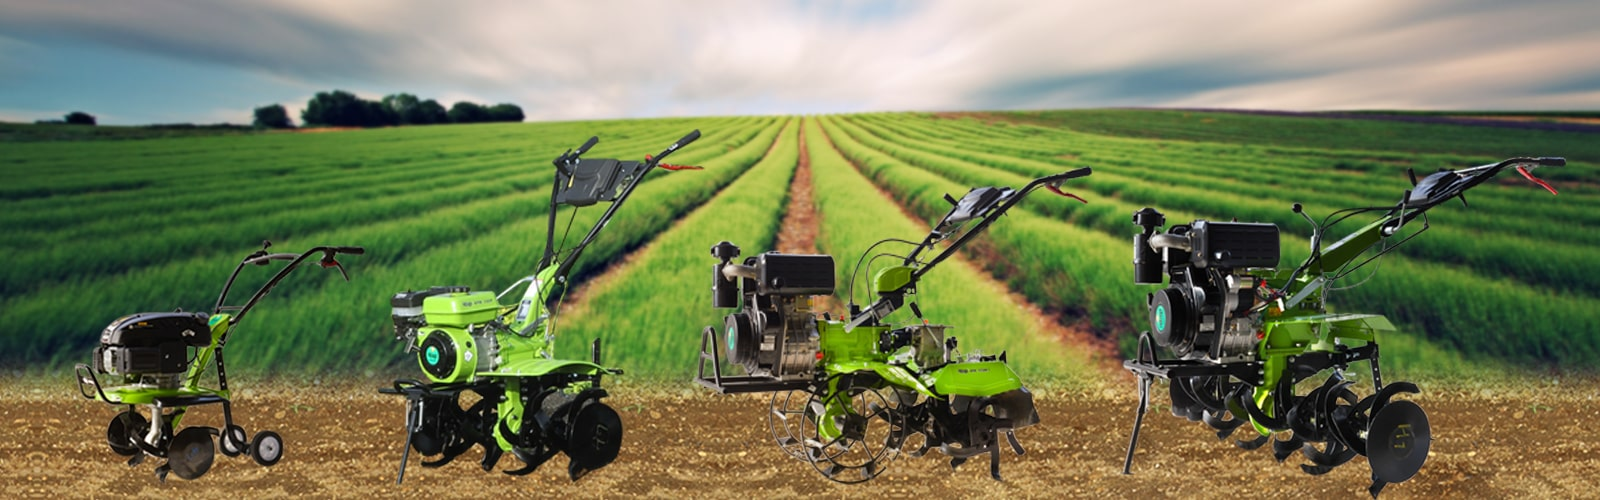 Almighty agrotech pvt ltd